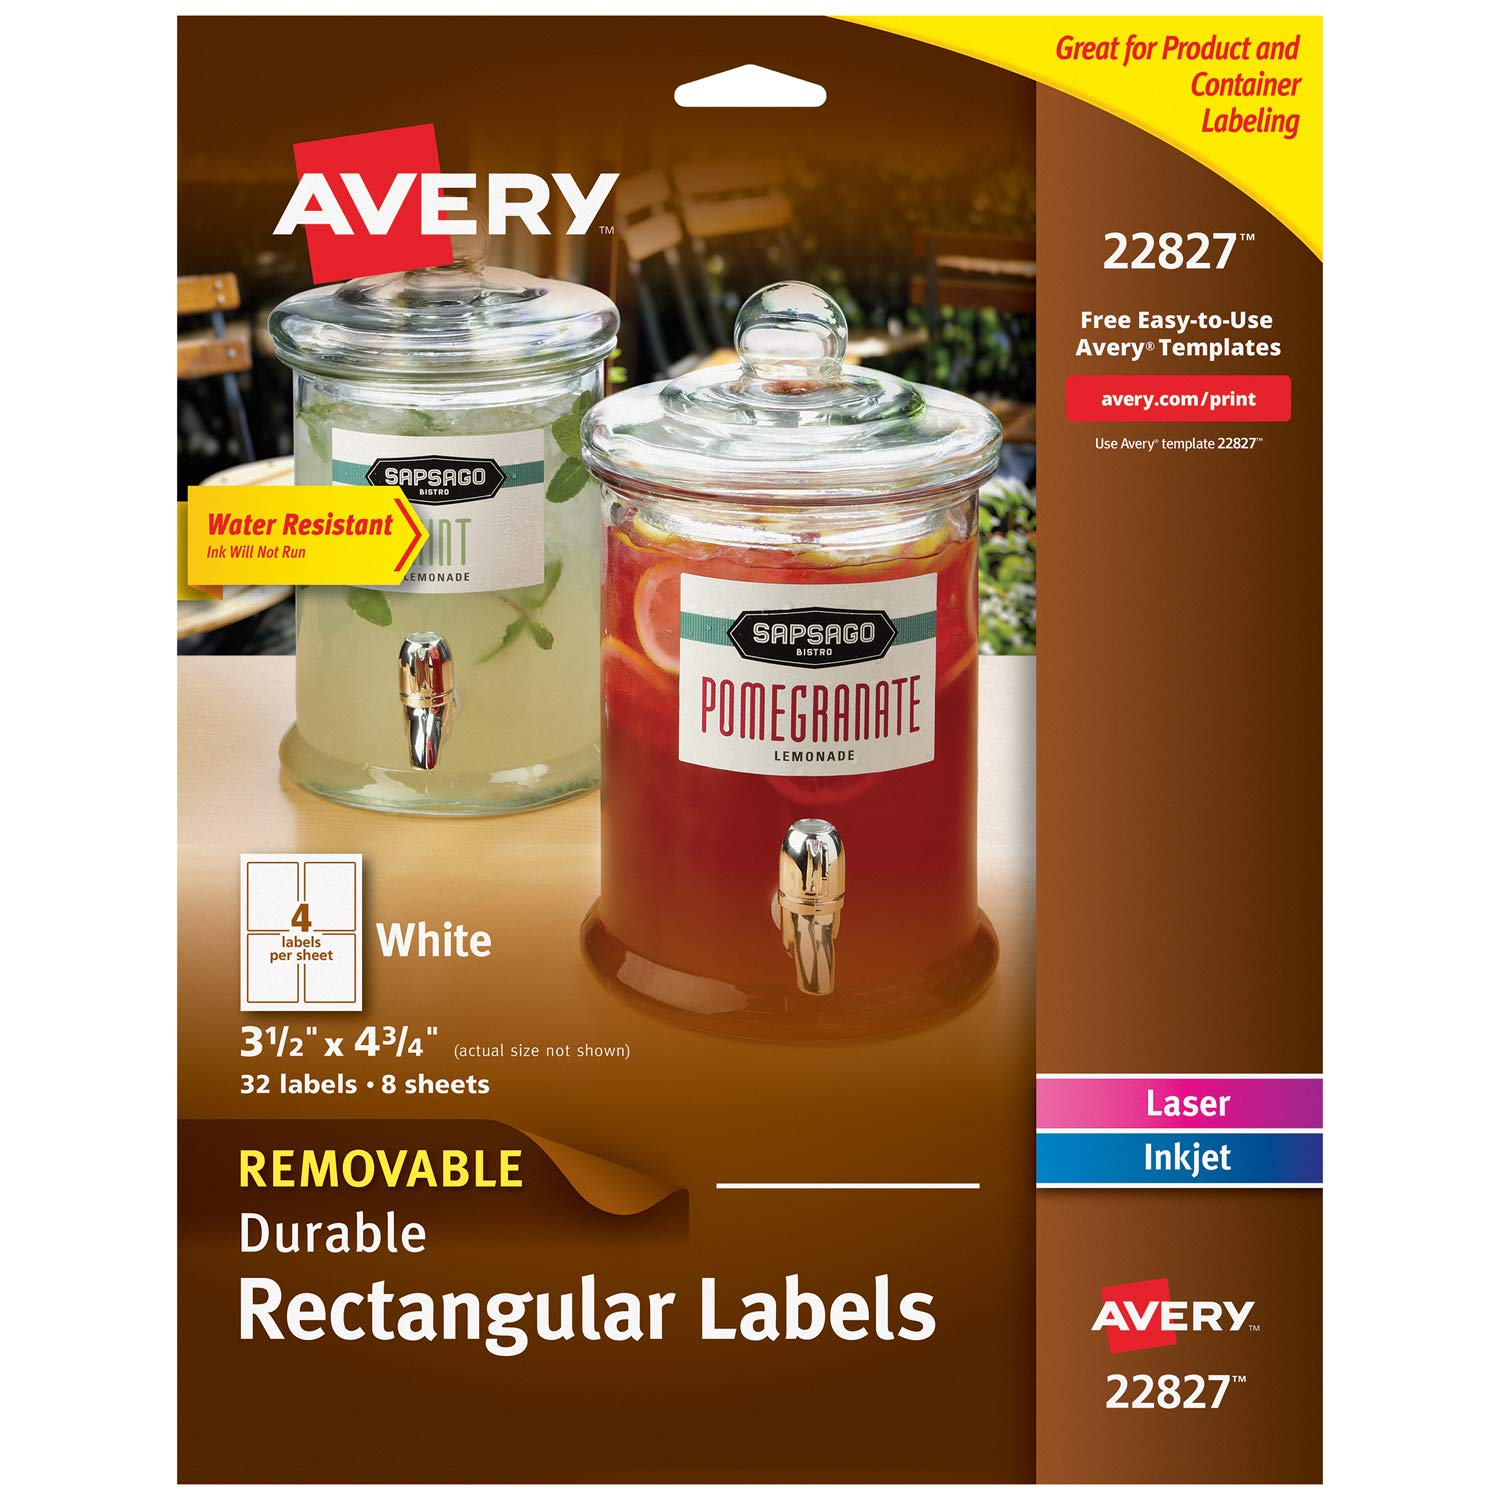 "Avery Removable Labels for Laser & Inkjet Printers, 3.5"" x 4.75"", 32 Water Resistant Labels (22827)"